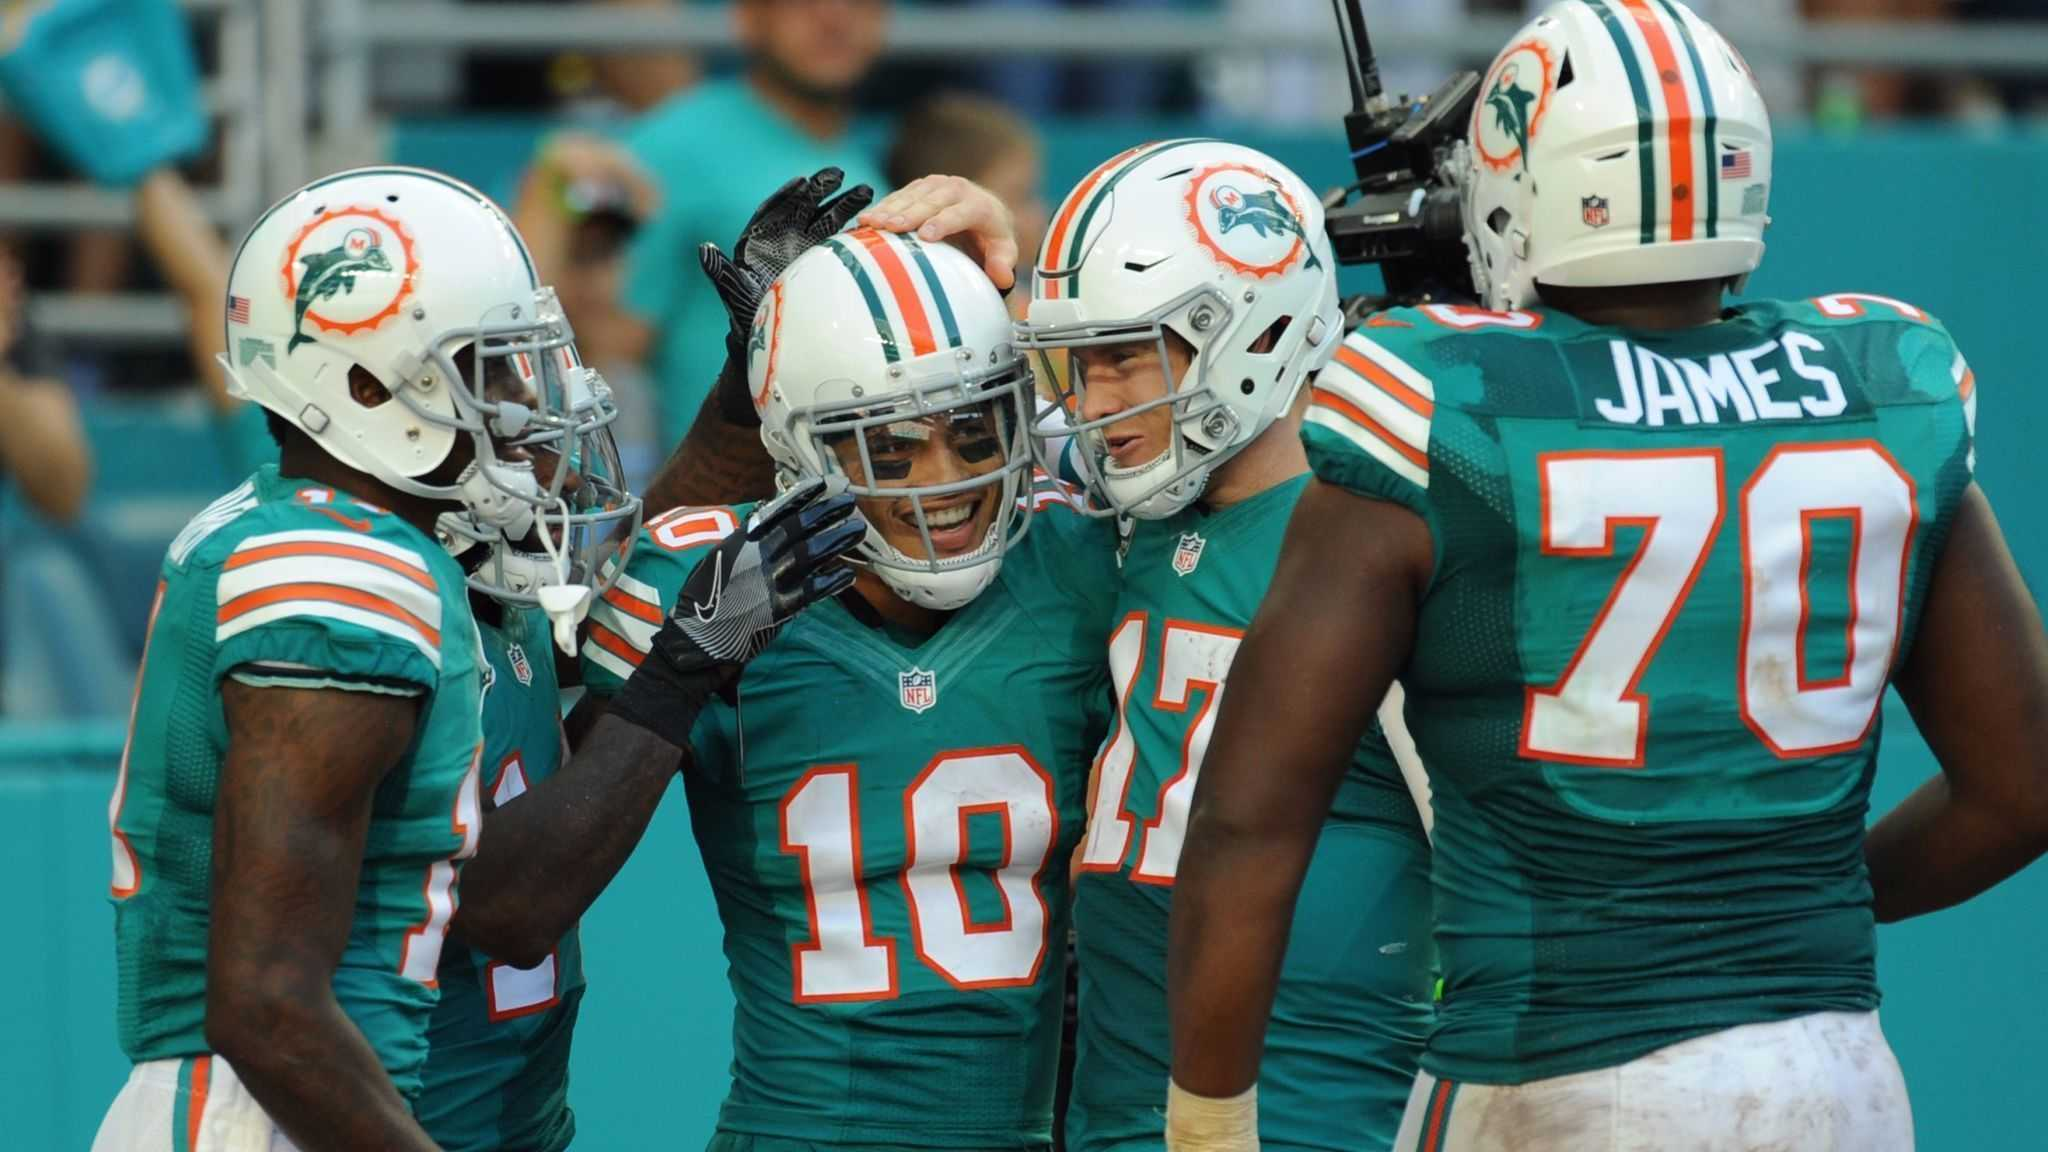 8c108e07550 We made NFL request last week to wear throwbacks again for JAX. It was  approved. See you Sunday with new (old) end zones too… go  MiamiDolphins ...